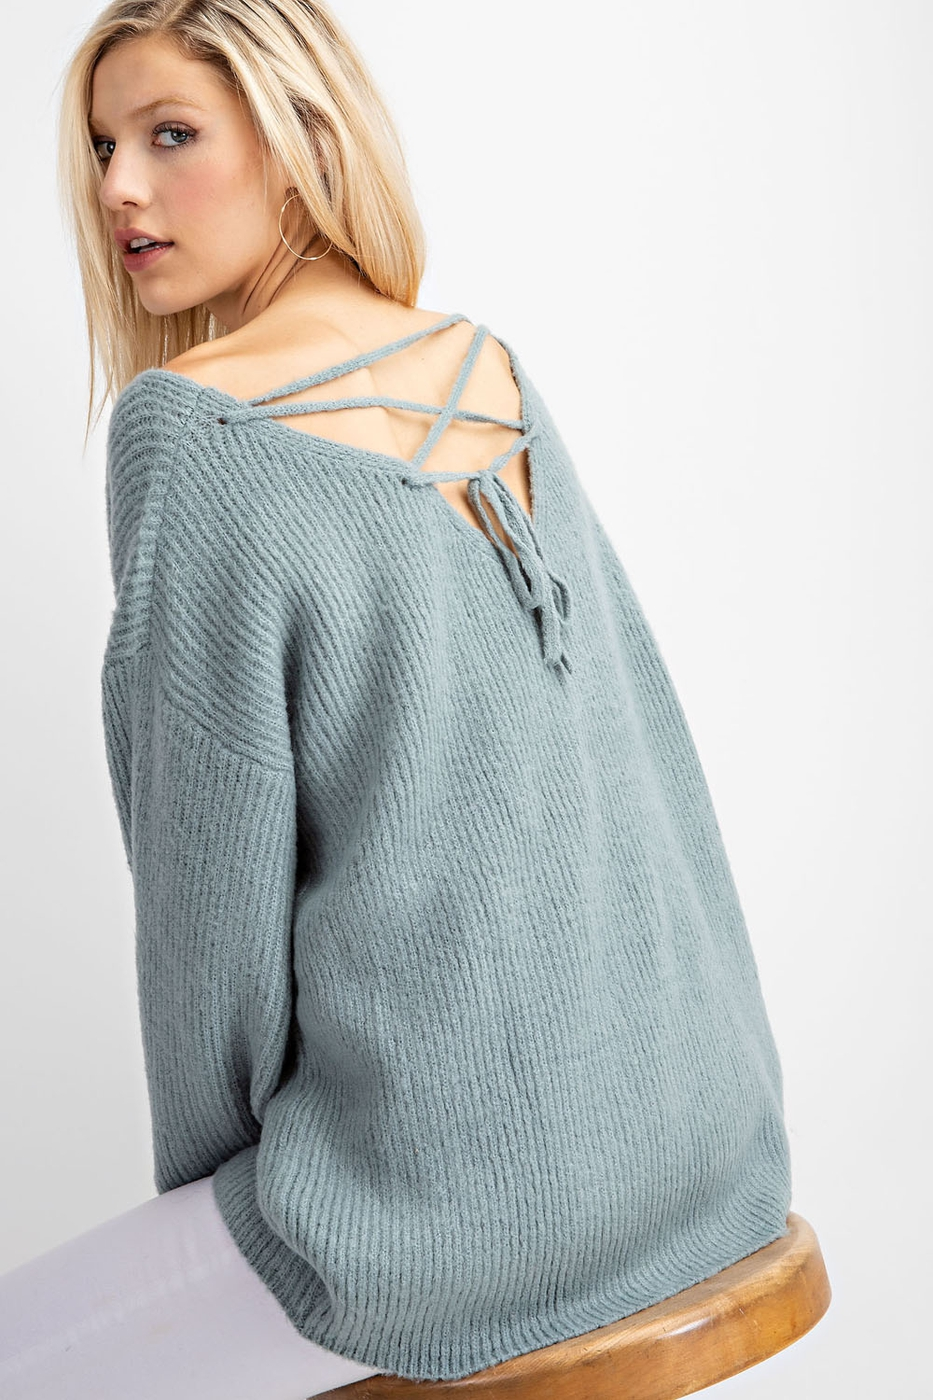 BACK TIE DETAIL LOOSE FIT SWEATER - orangeshine.com